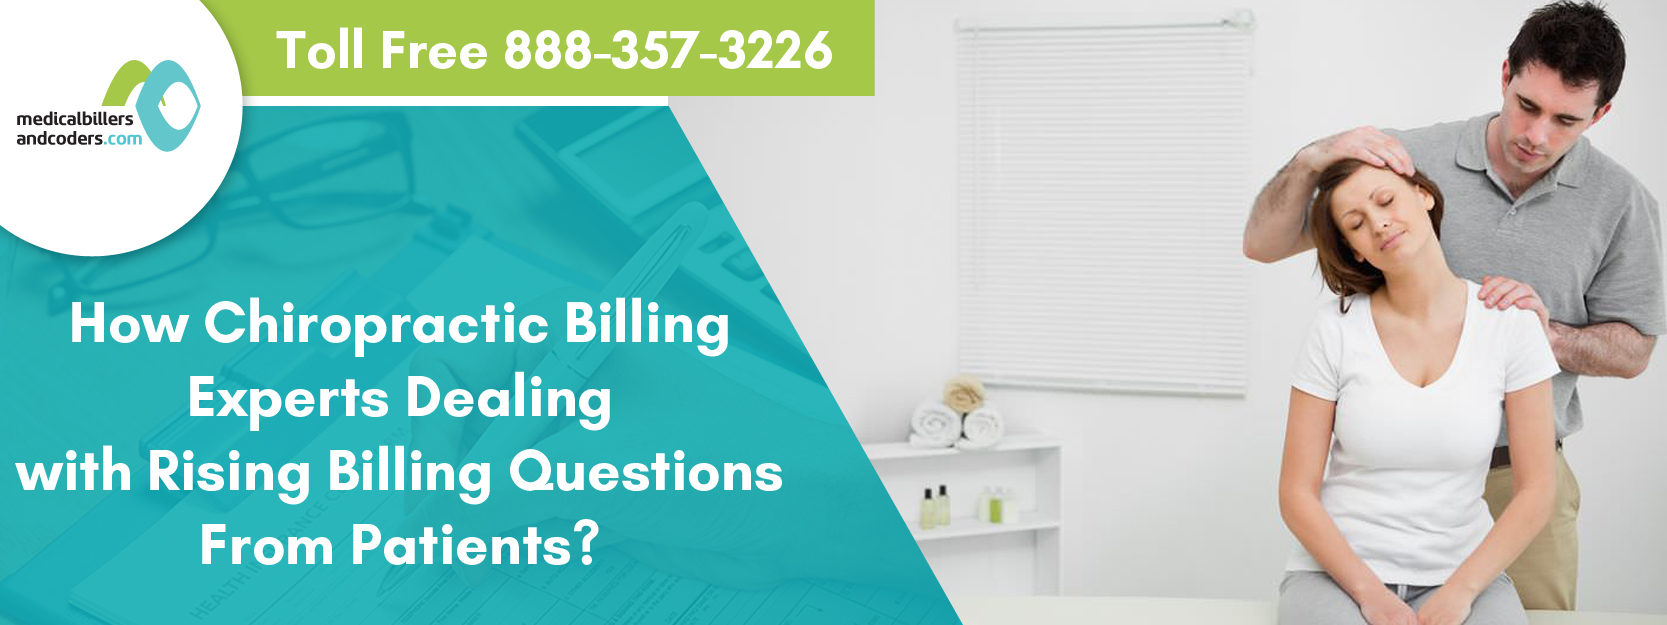 chiropractic-billing-experts-dealing-patients-questions